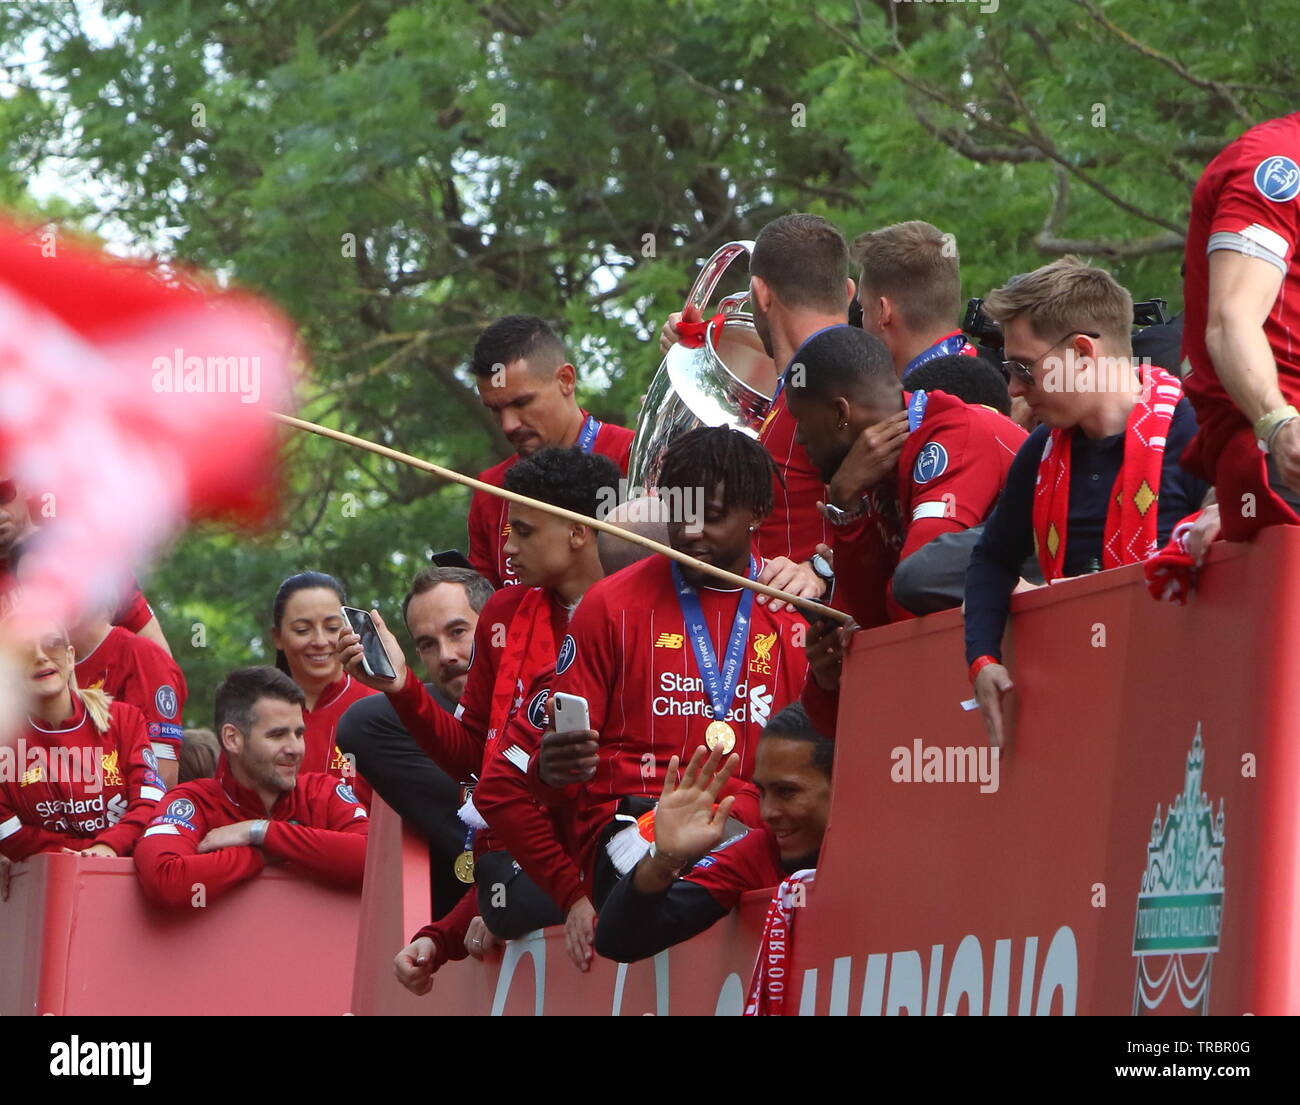 Liverpool,Uk Liverpool Fc Champions Parade through the streets of Liverpool credit Ian Fairbrother/Alamy Stock Photos - Stock Image